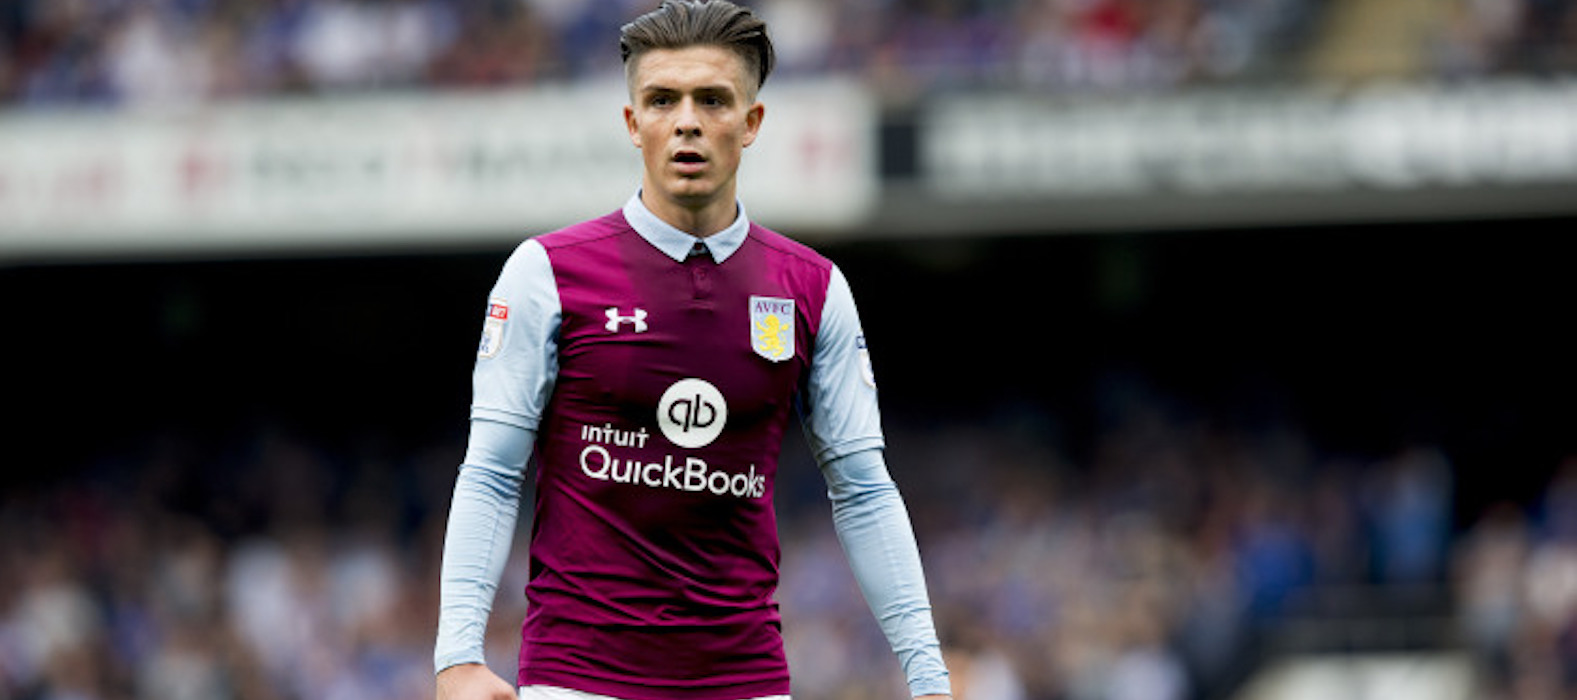 Manchester United turn to Aston Villa's Jack Grealish for attacking depth